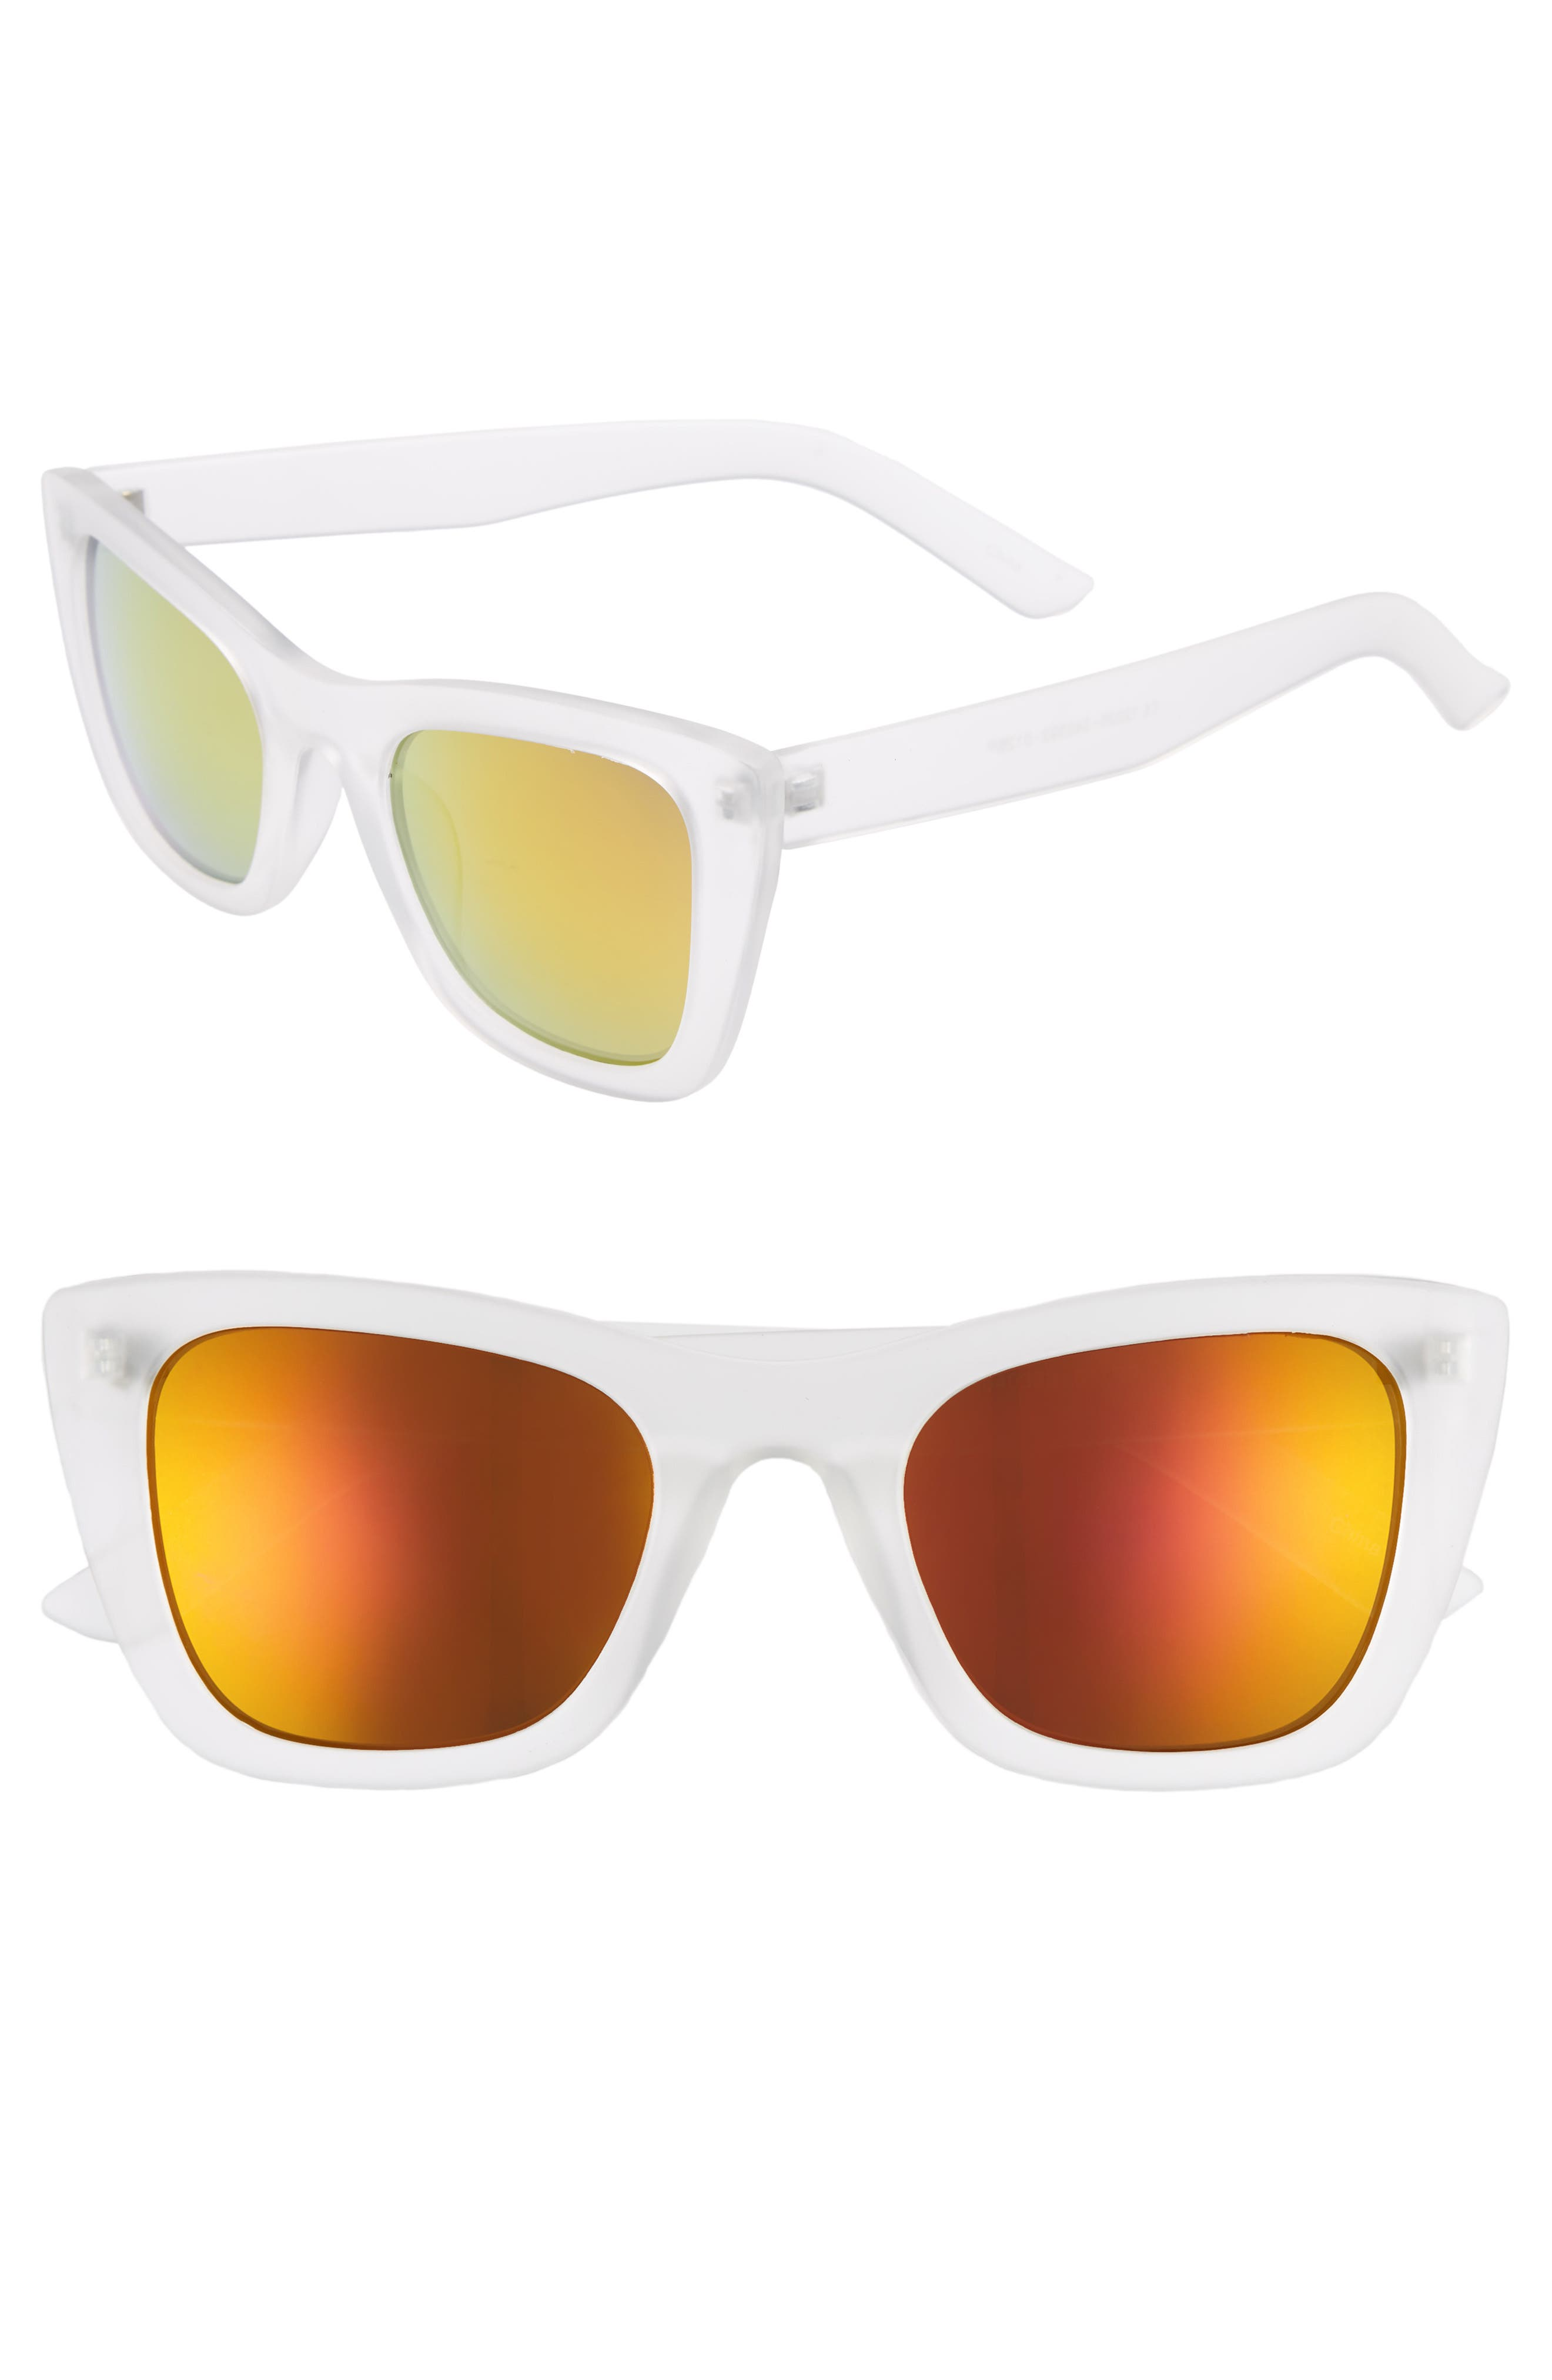 51mm Translucent Square Sunglasses,                             Main thumbnail 1, color,                             CLEAR/ GOLD